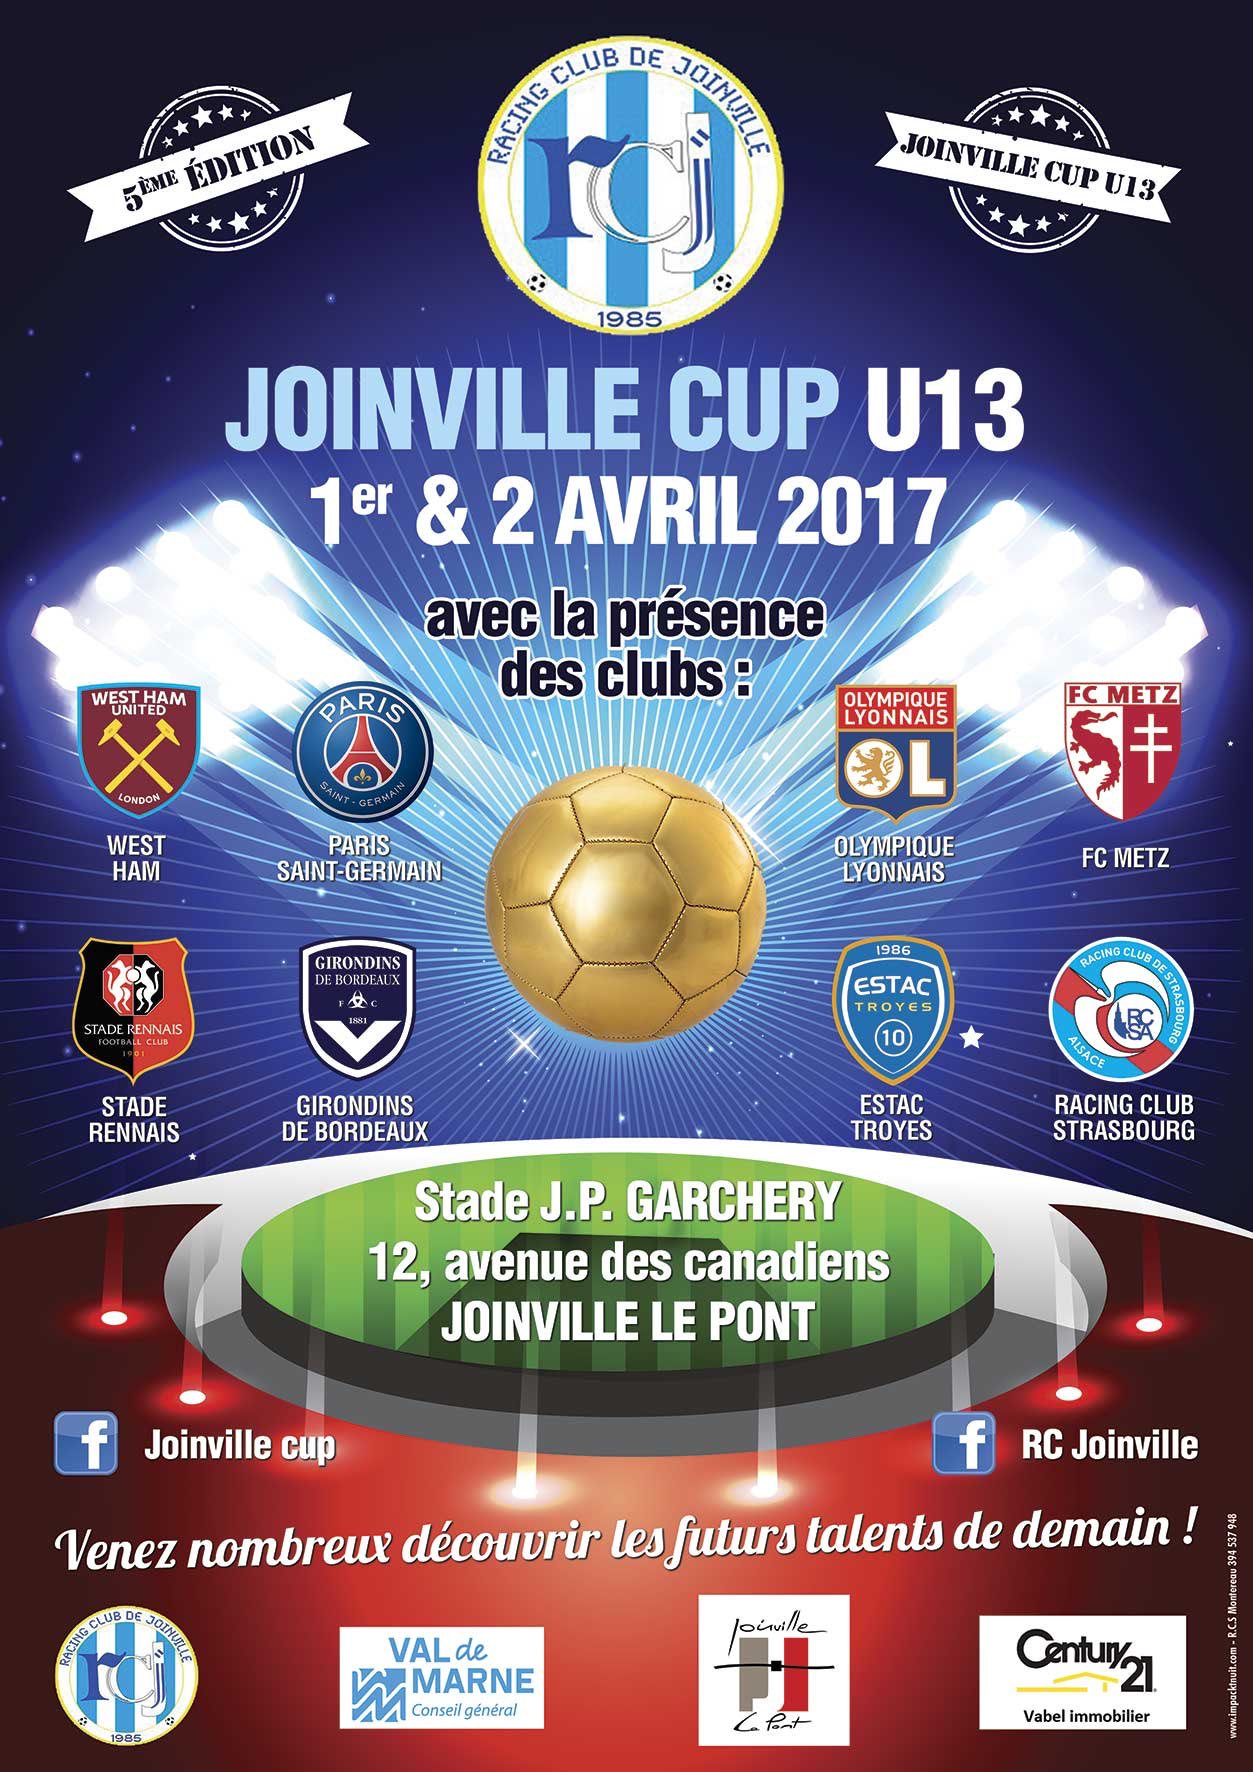 Cfa Girondins : La Joinville Cup U13, c'est ce week-end - Formation Girondins